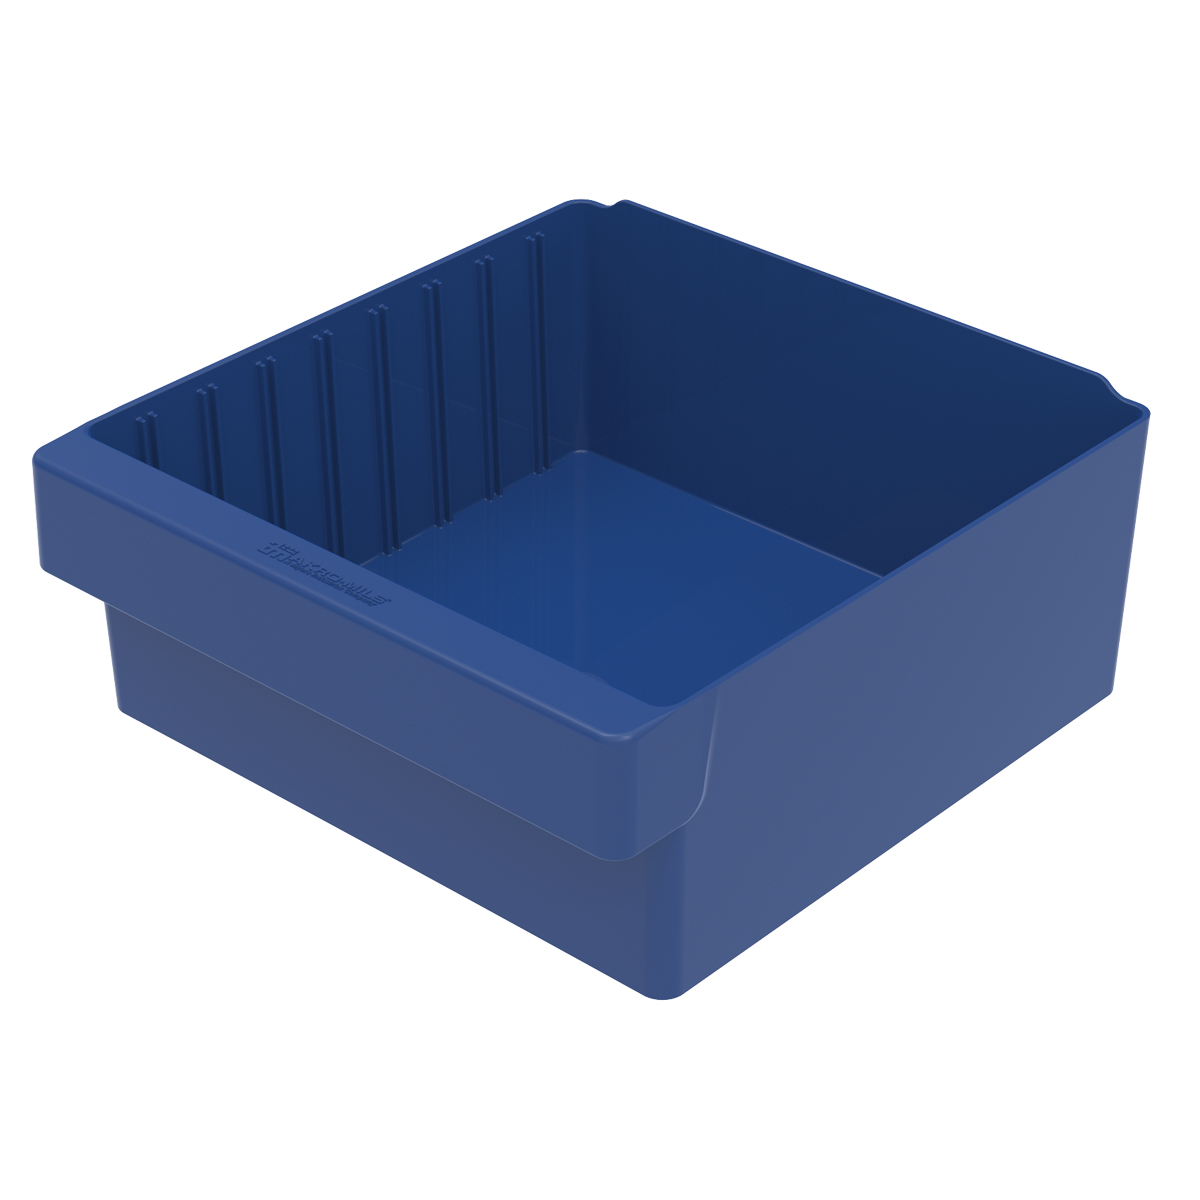 AkroDrawer 11-5/8 x 11-1/8 x 4-5/8, Blue (31112BLU).  This item sold in carton quantities of 4.